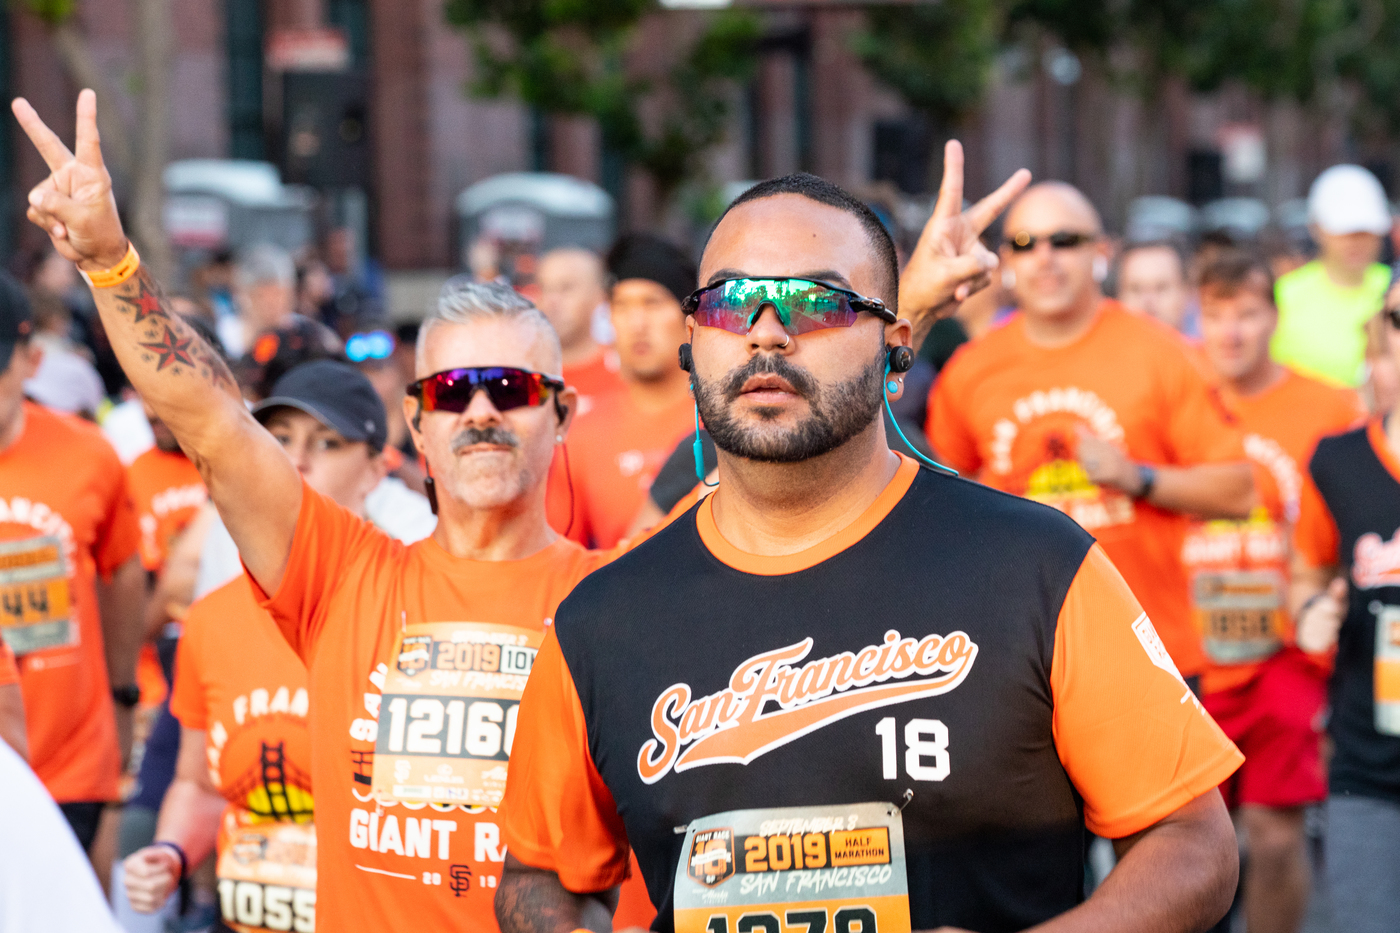 San Francisco Giant Race presented by Alaska Airlines